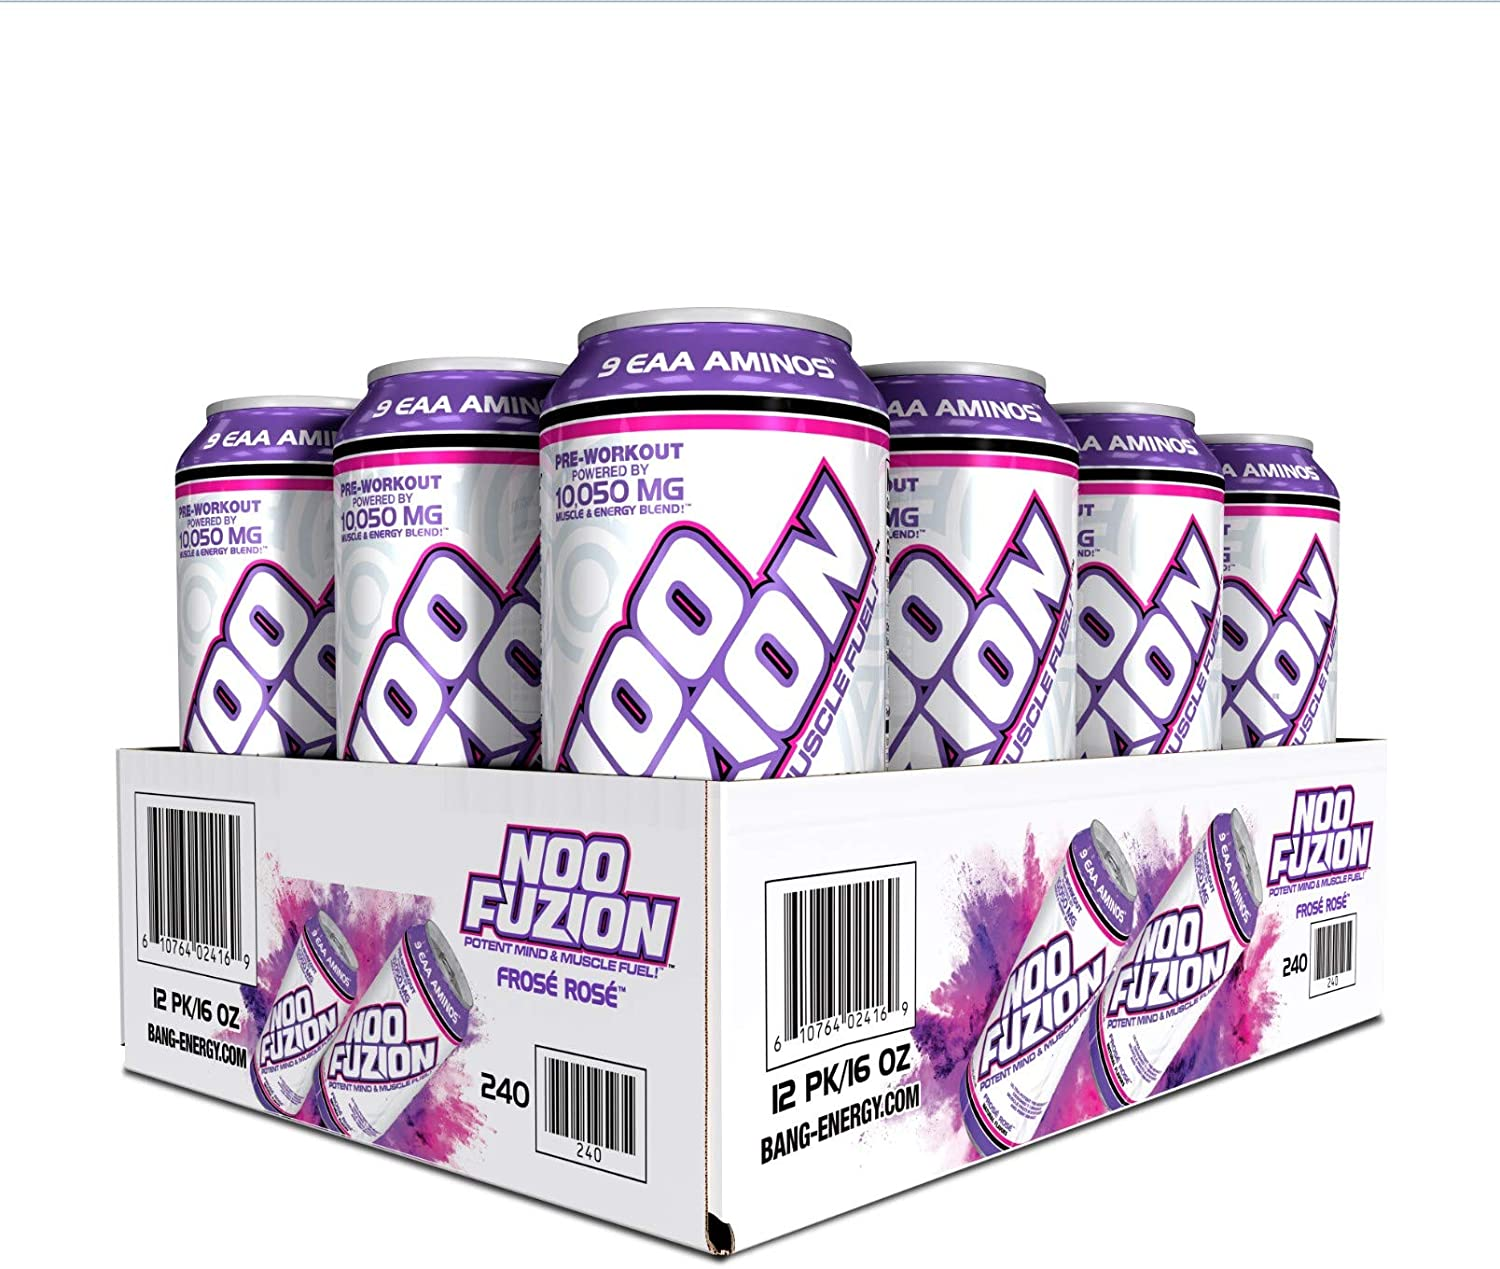 VPX, NOO FUZION, Ready-to-Drink Pre-Workout, Potent Mind & Muscle Fuel, Cognizin, 300mg Caffeine, 7000mg EAAs & BCAAs, 2.5g Betaine, 0g Sugar (Frose Rose) (12-Pack)